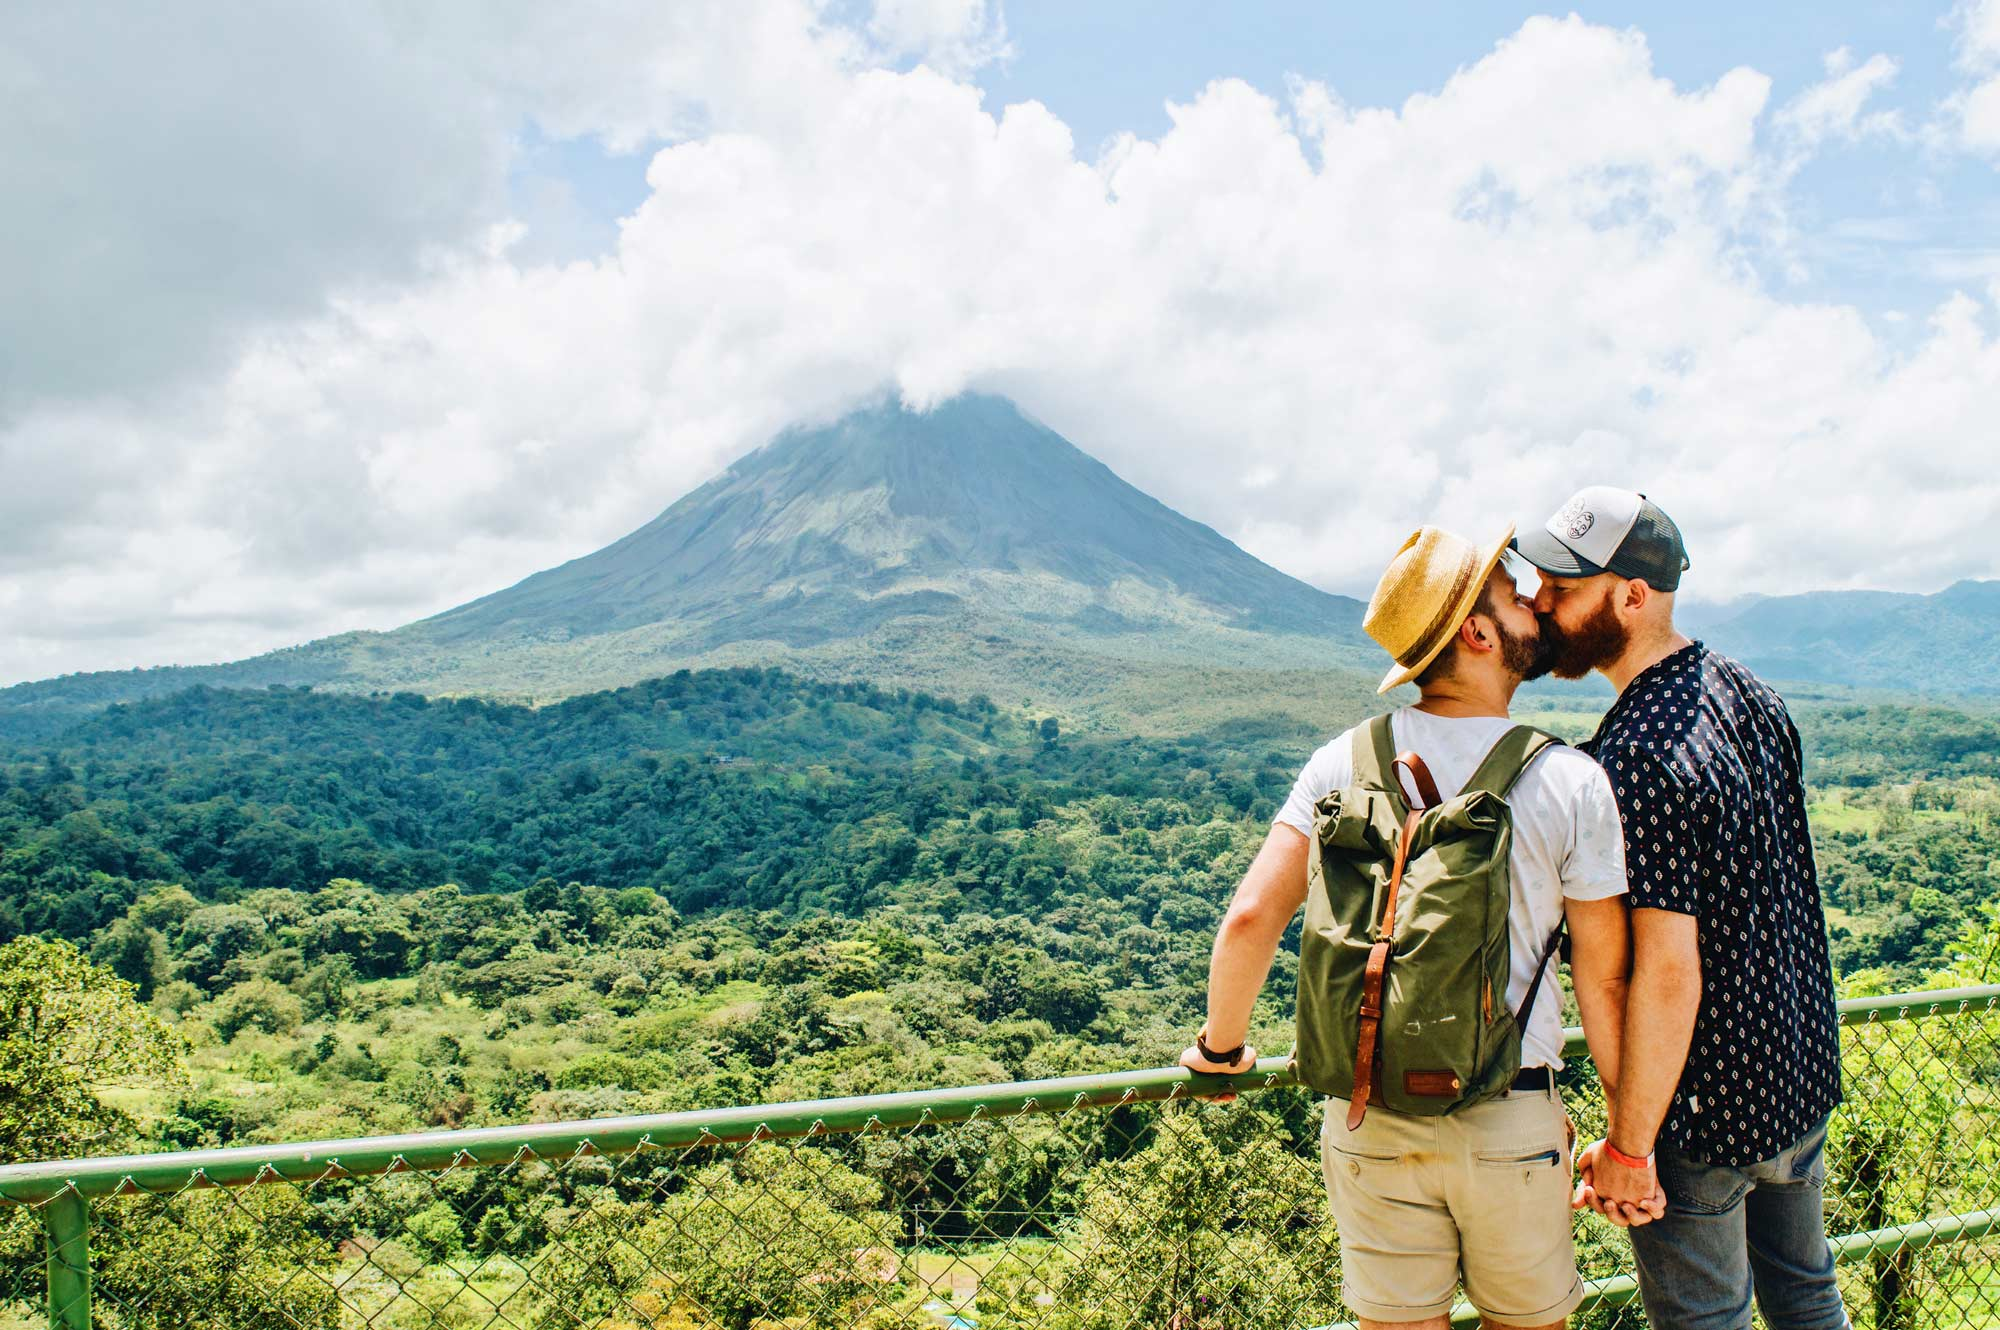 Gay Travel Journal Costa Rica Exploring Gay-friendly Costa Rica hand-in-hand together © Coupleofmen.com